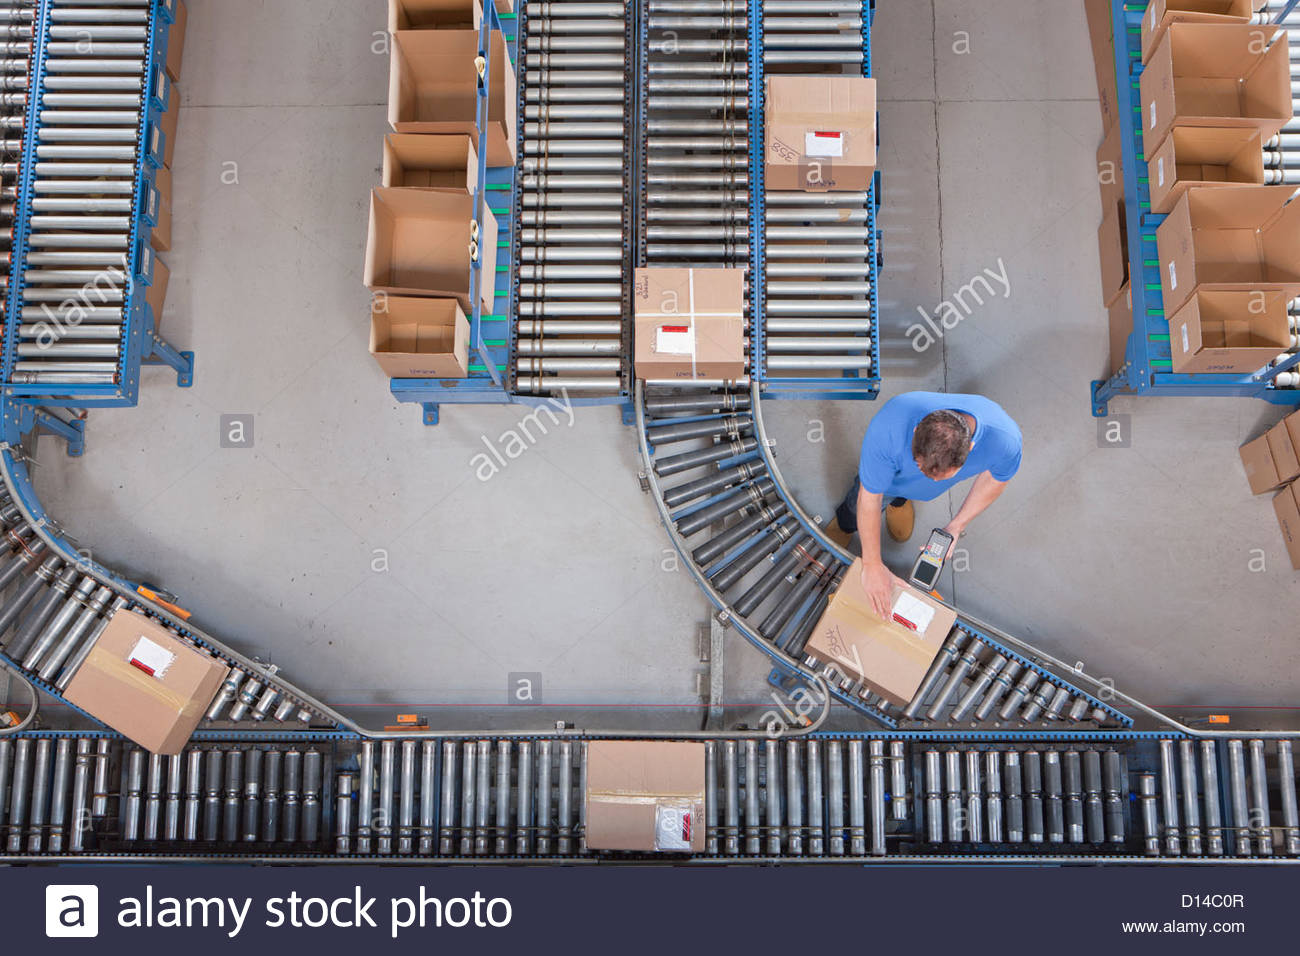 Worker with bar code reader scanning box on conveyor belt in distribution warehouse Stock Photo